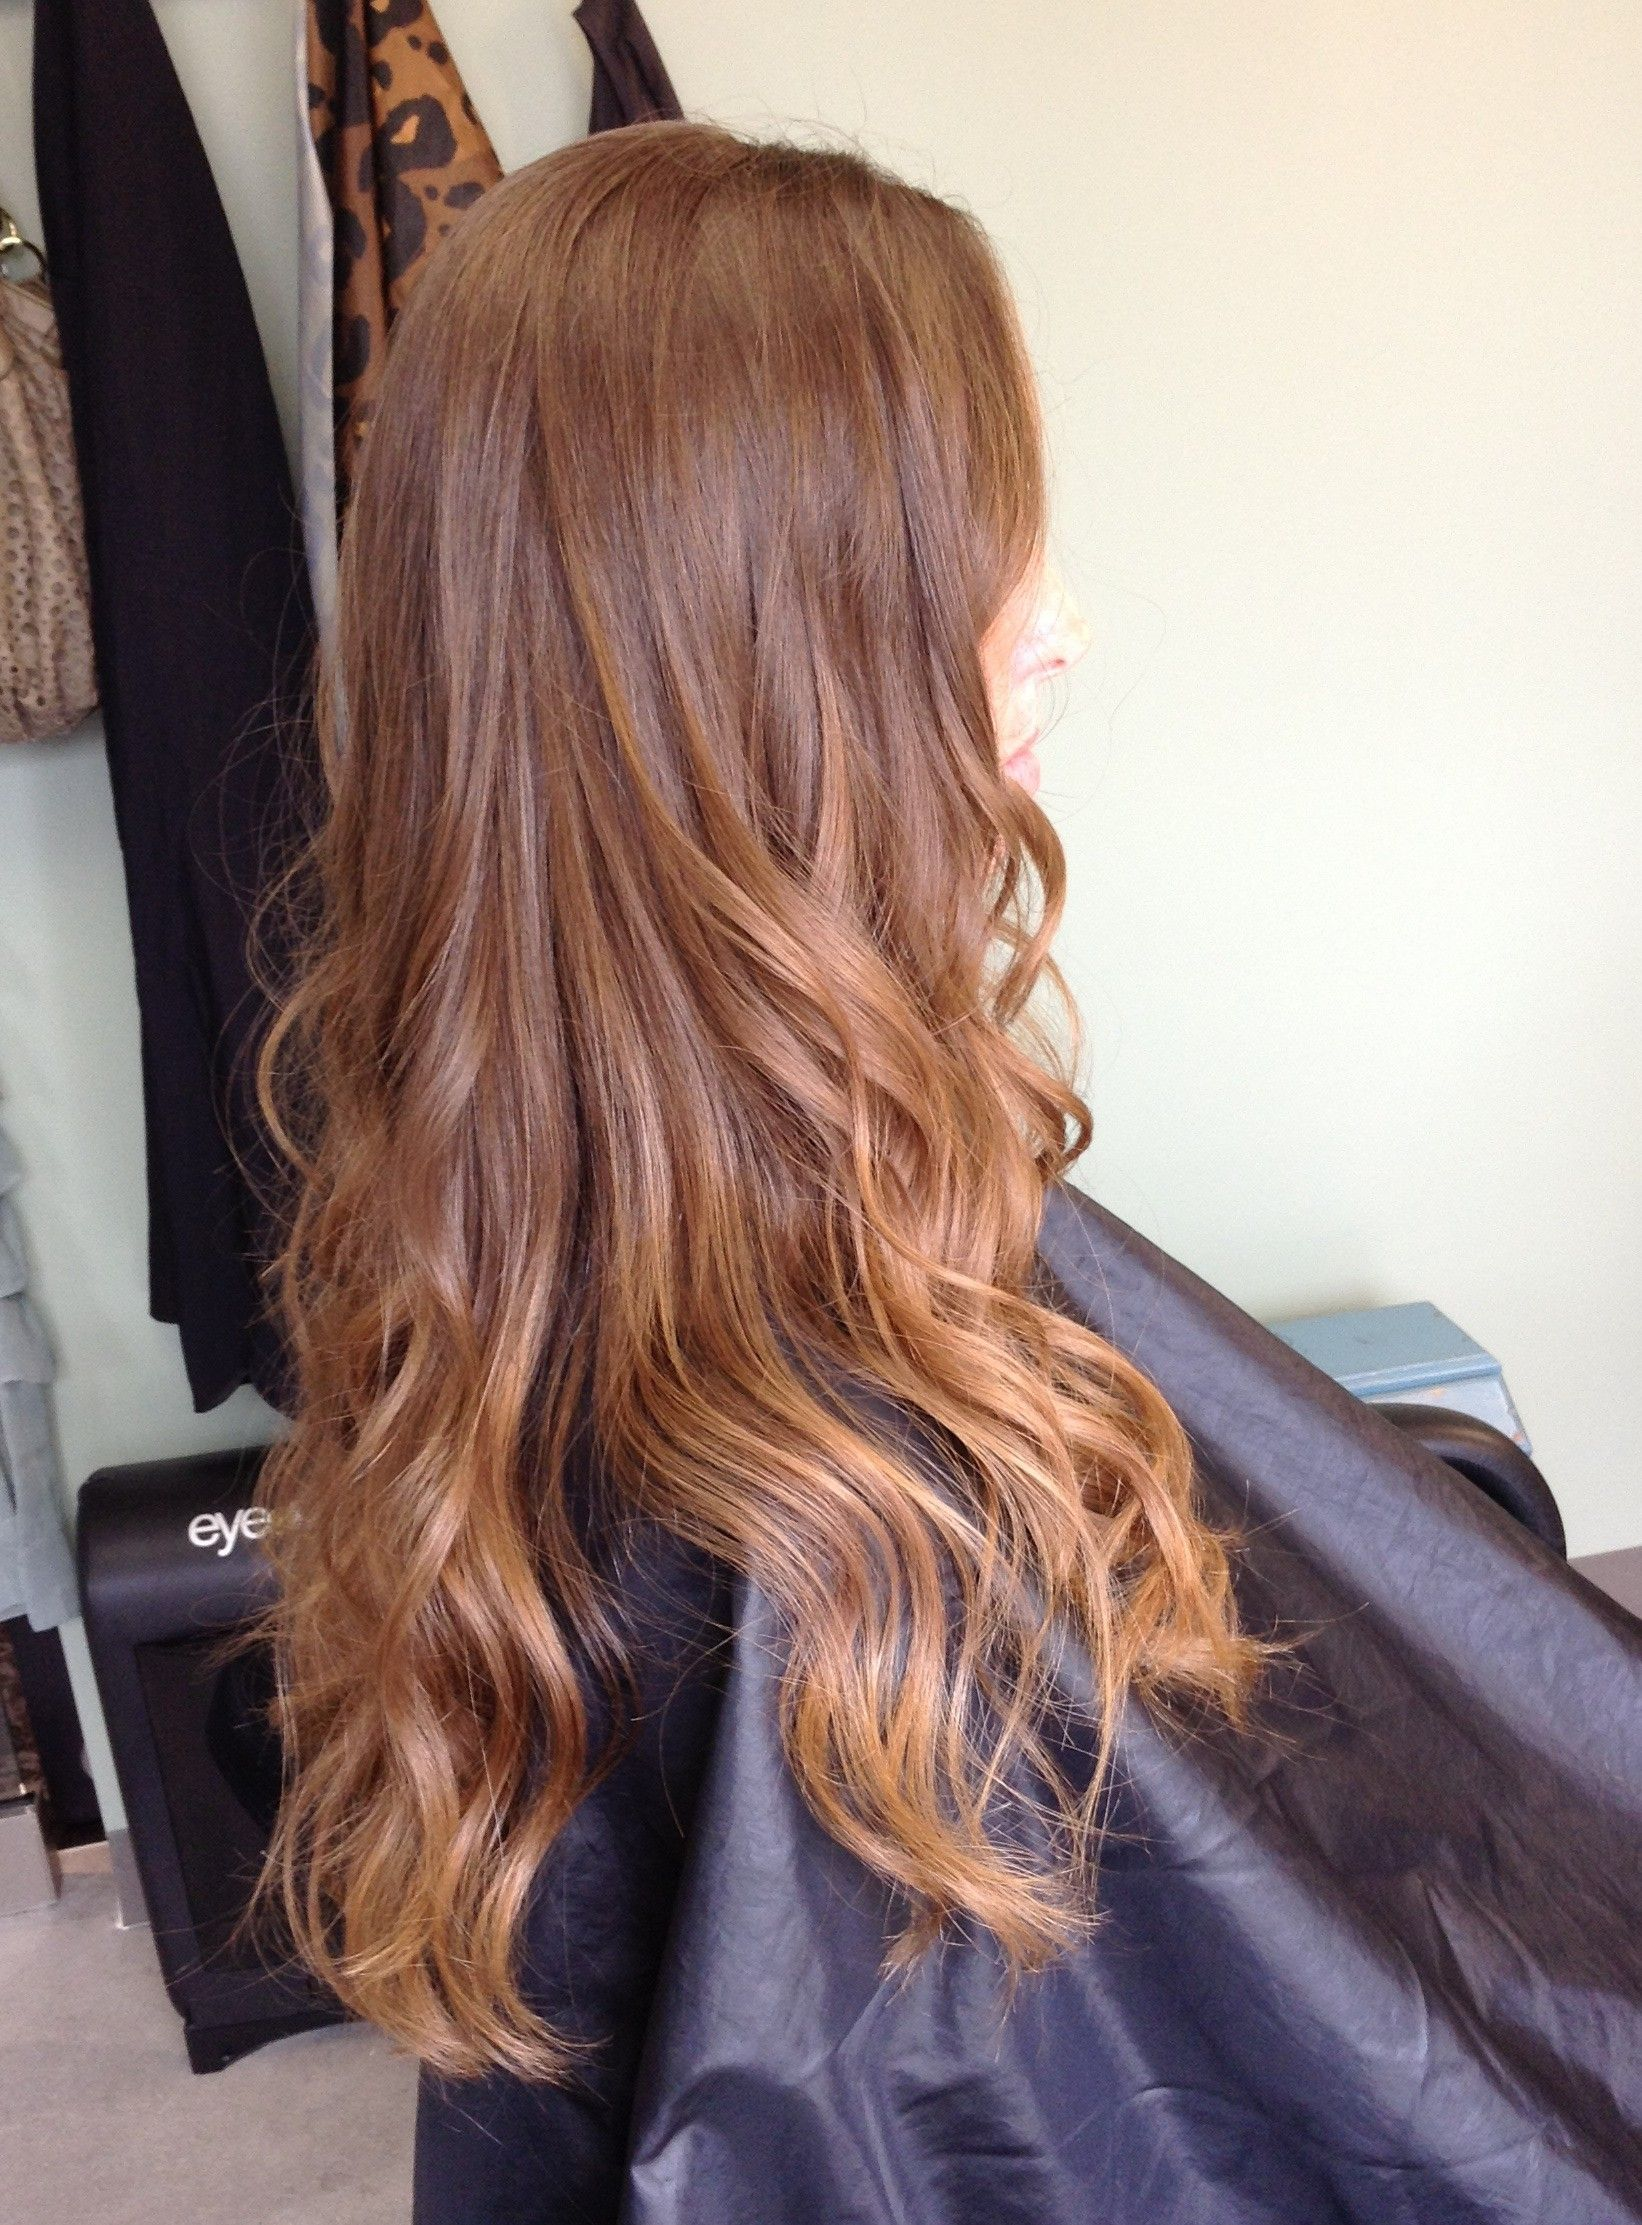 Color Melting A Chic New Way To Color Hair Glam Squad Pinterest